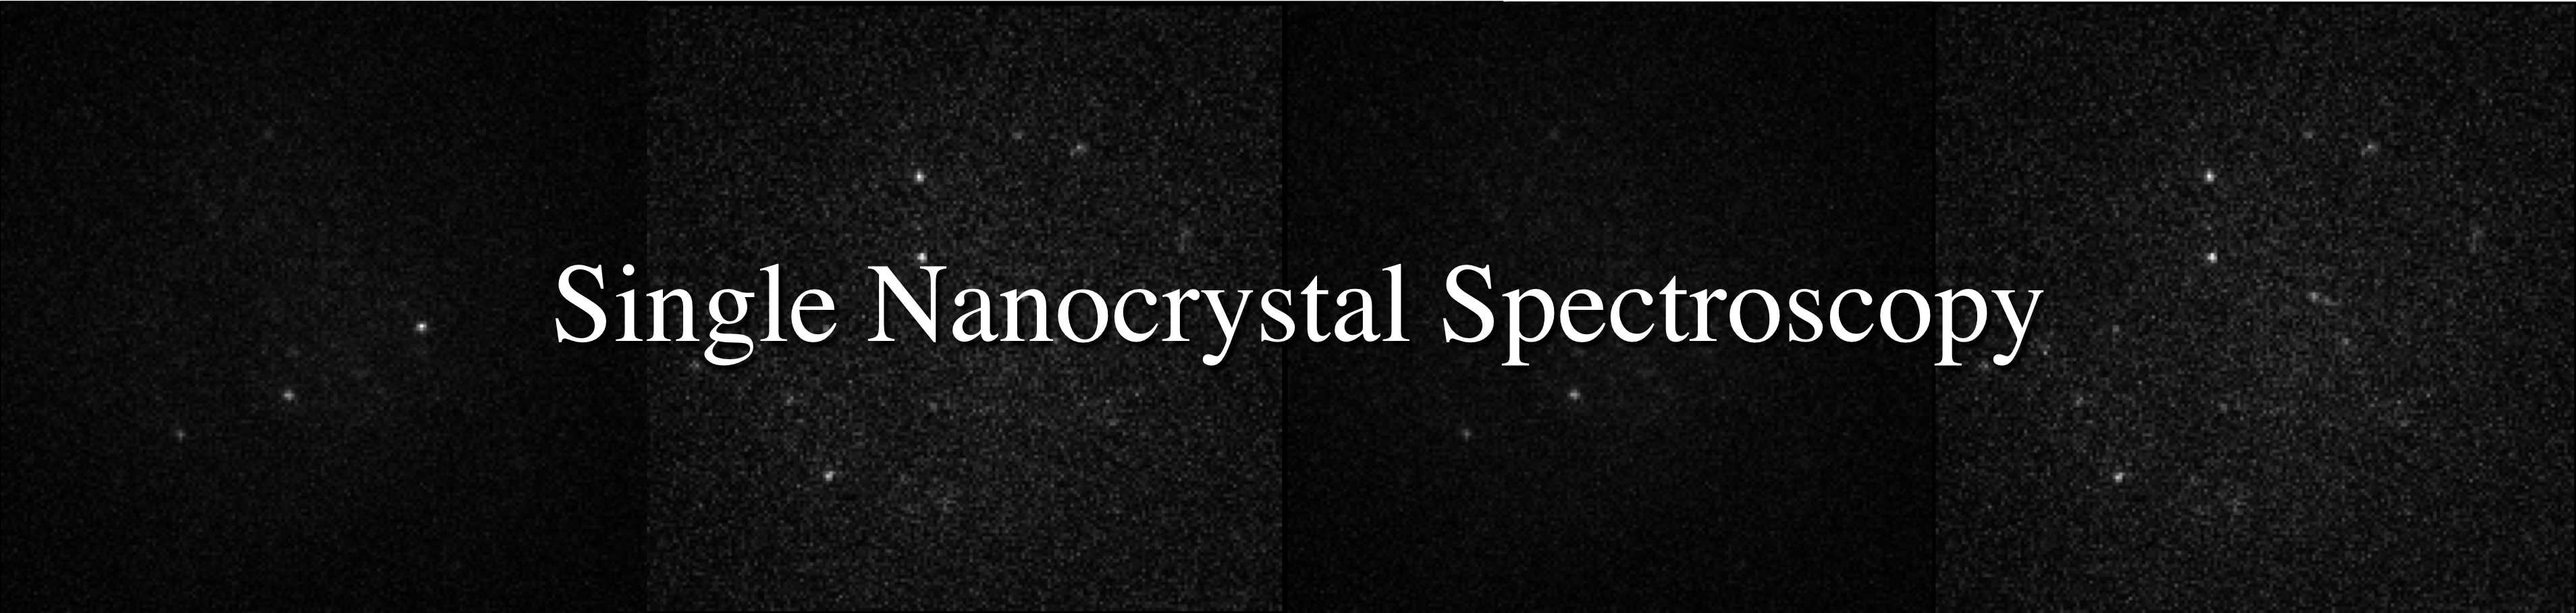 single nanocrystal